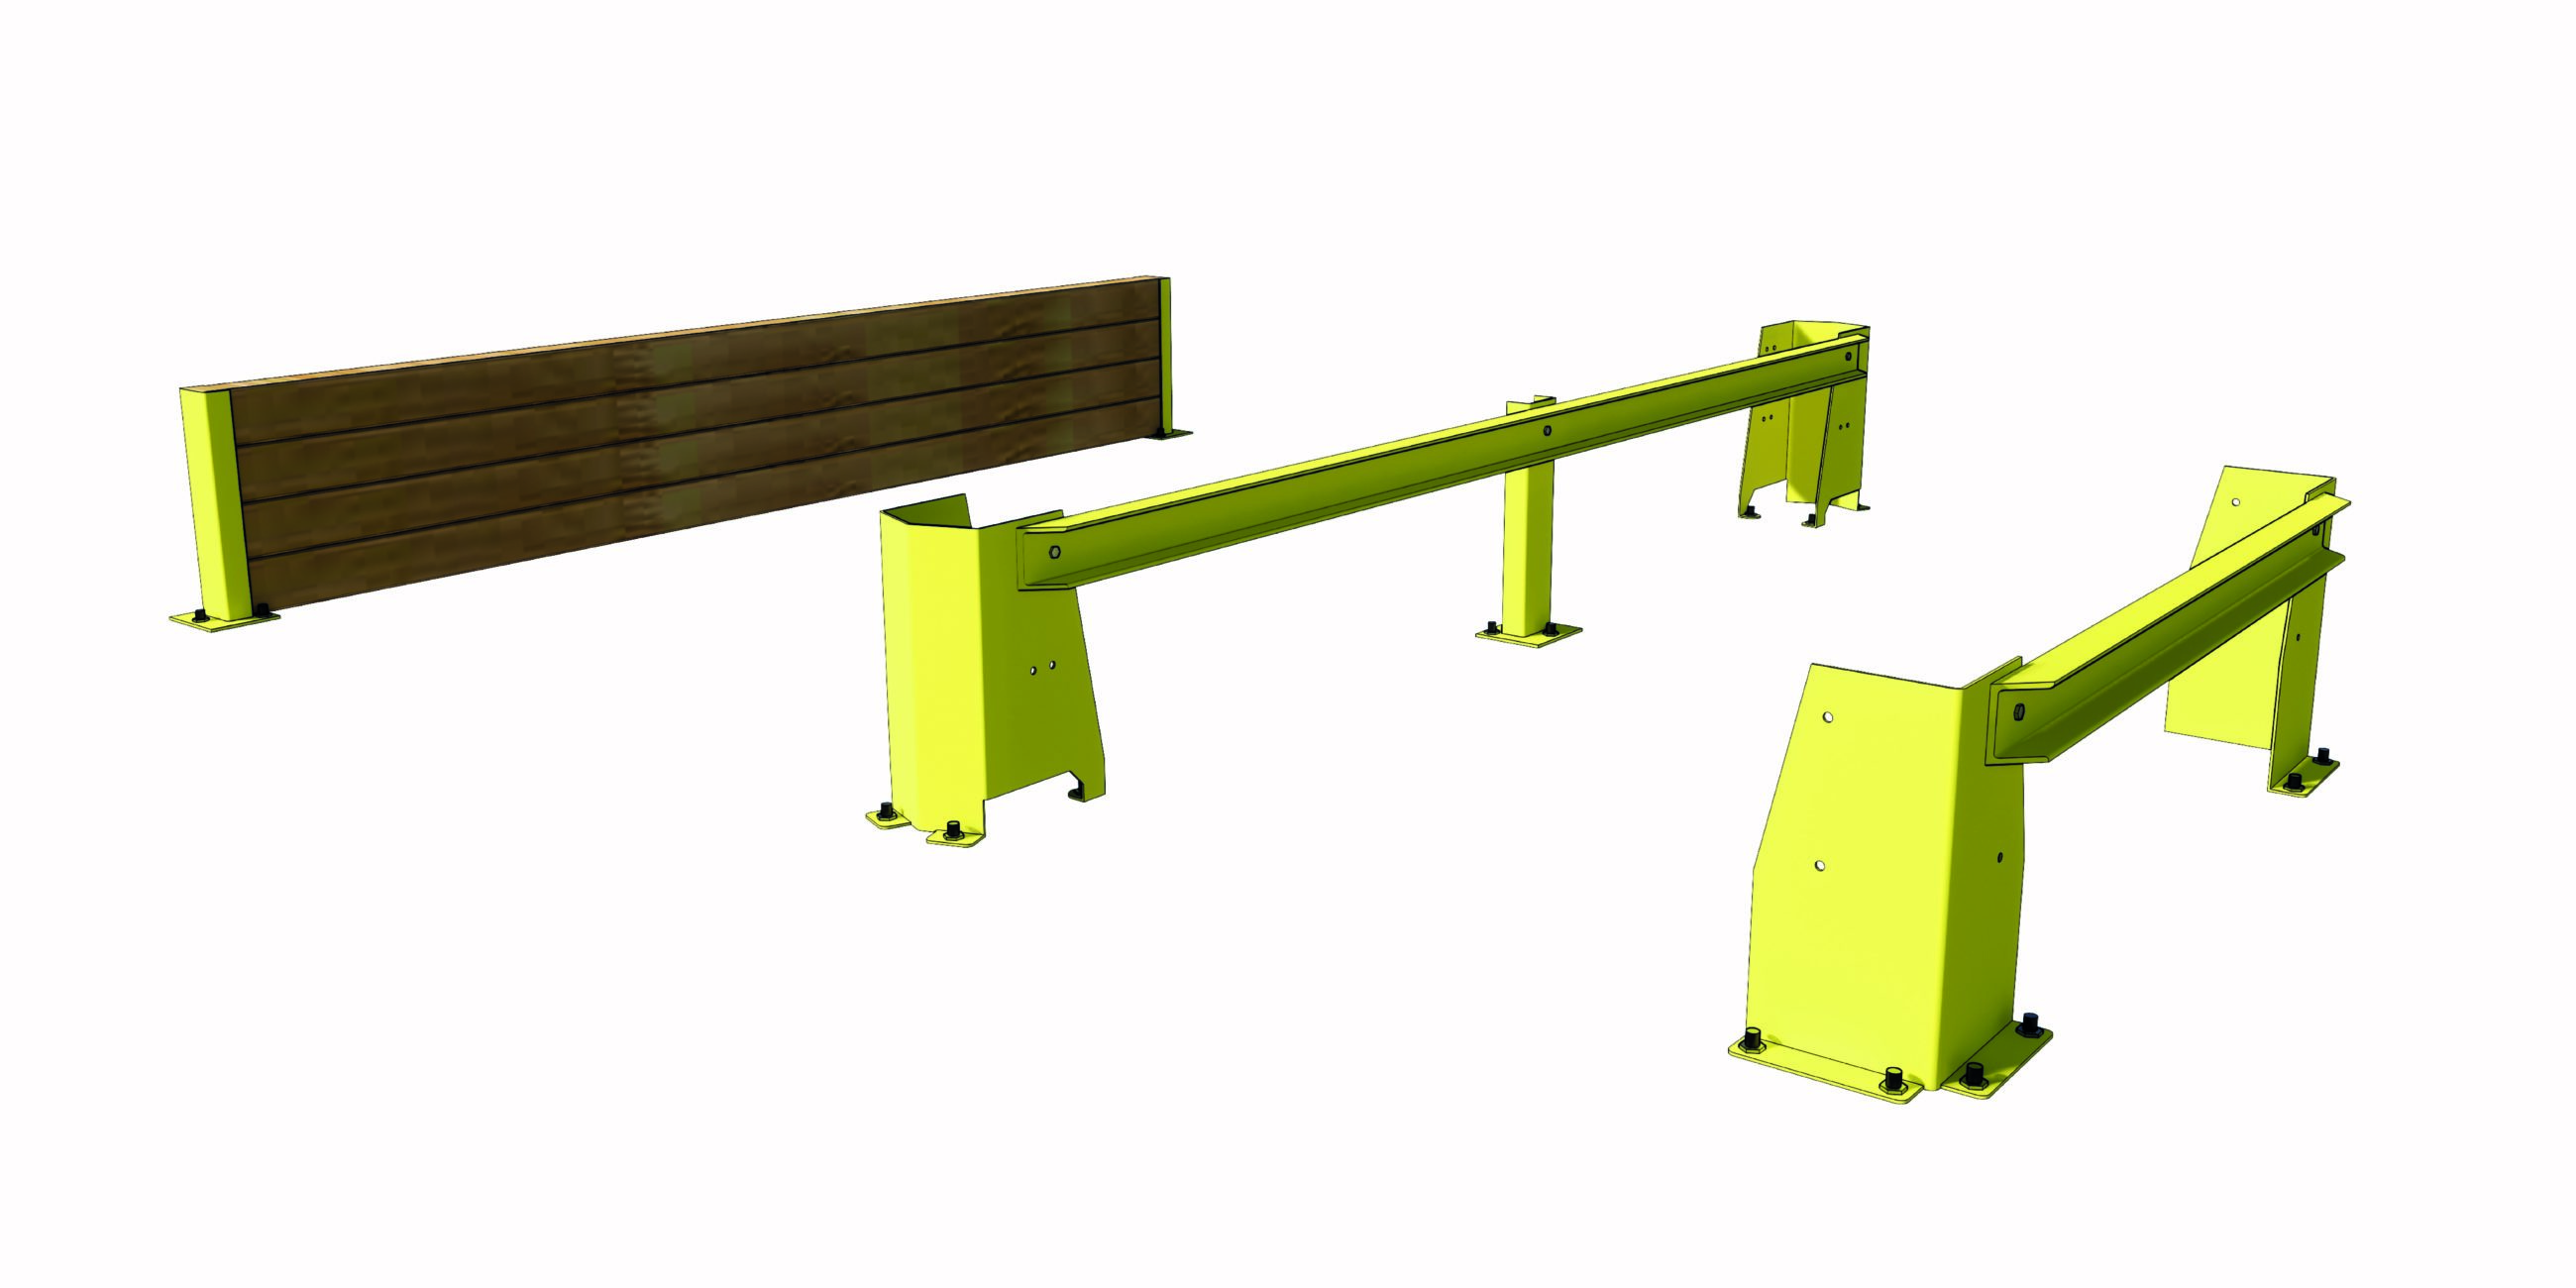 Palletstellingen laterale bescherming lateral protection